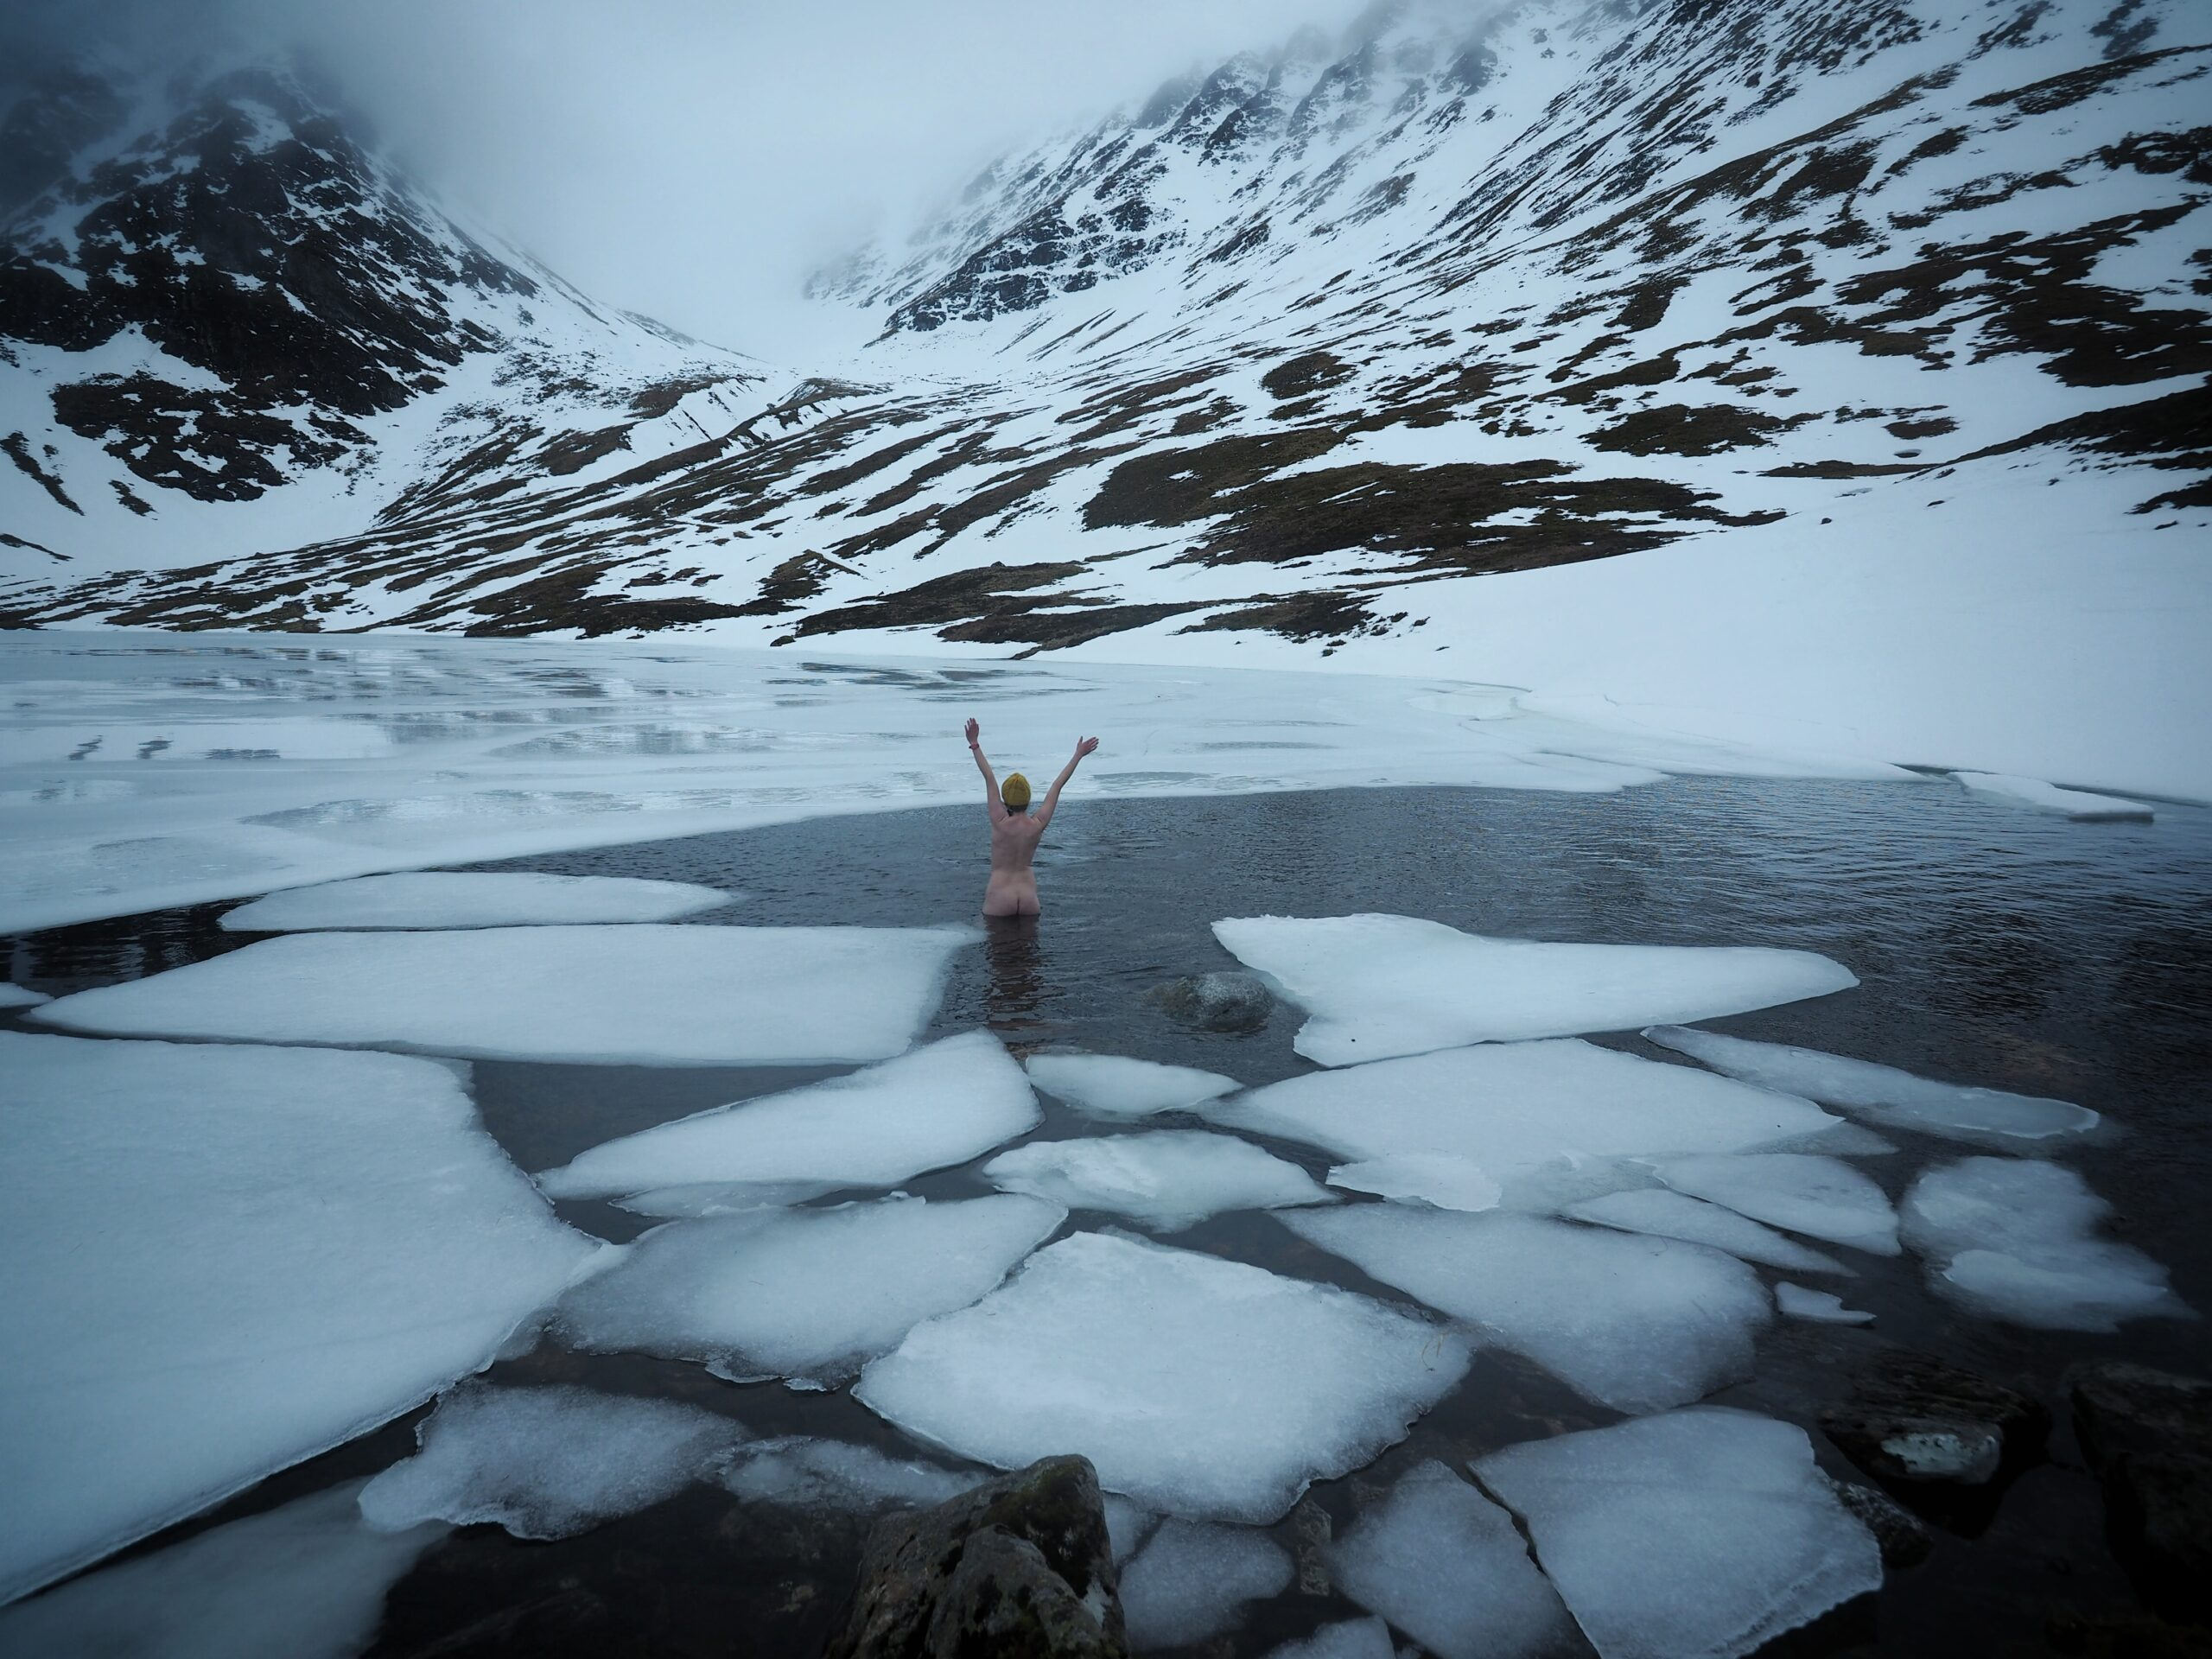 Dip a Day: Annie Le's Month of Icy Adventures